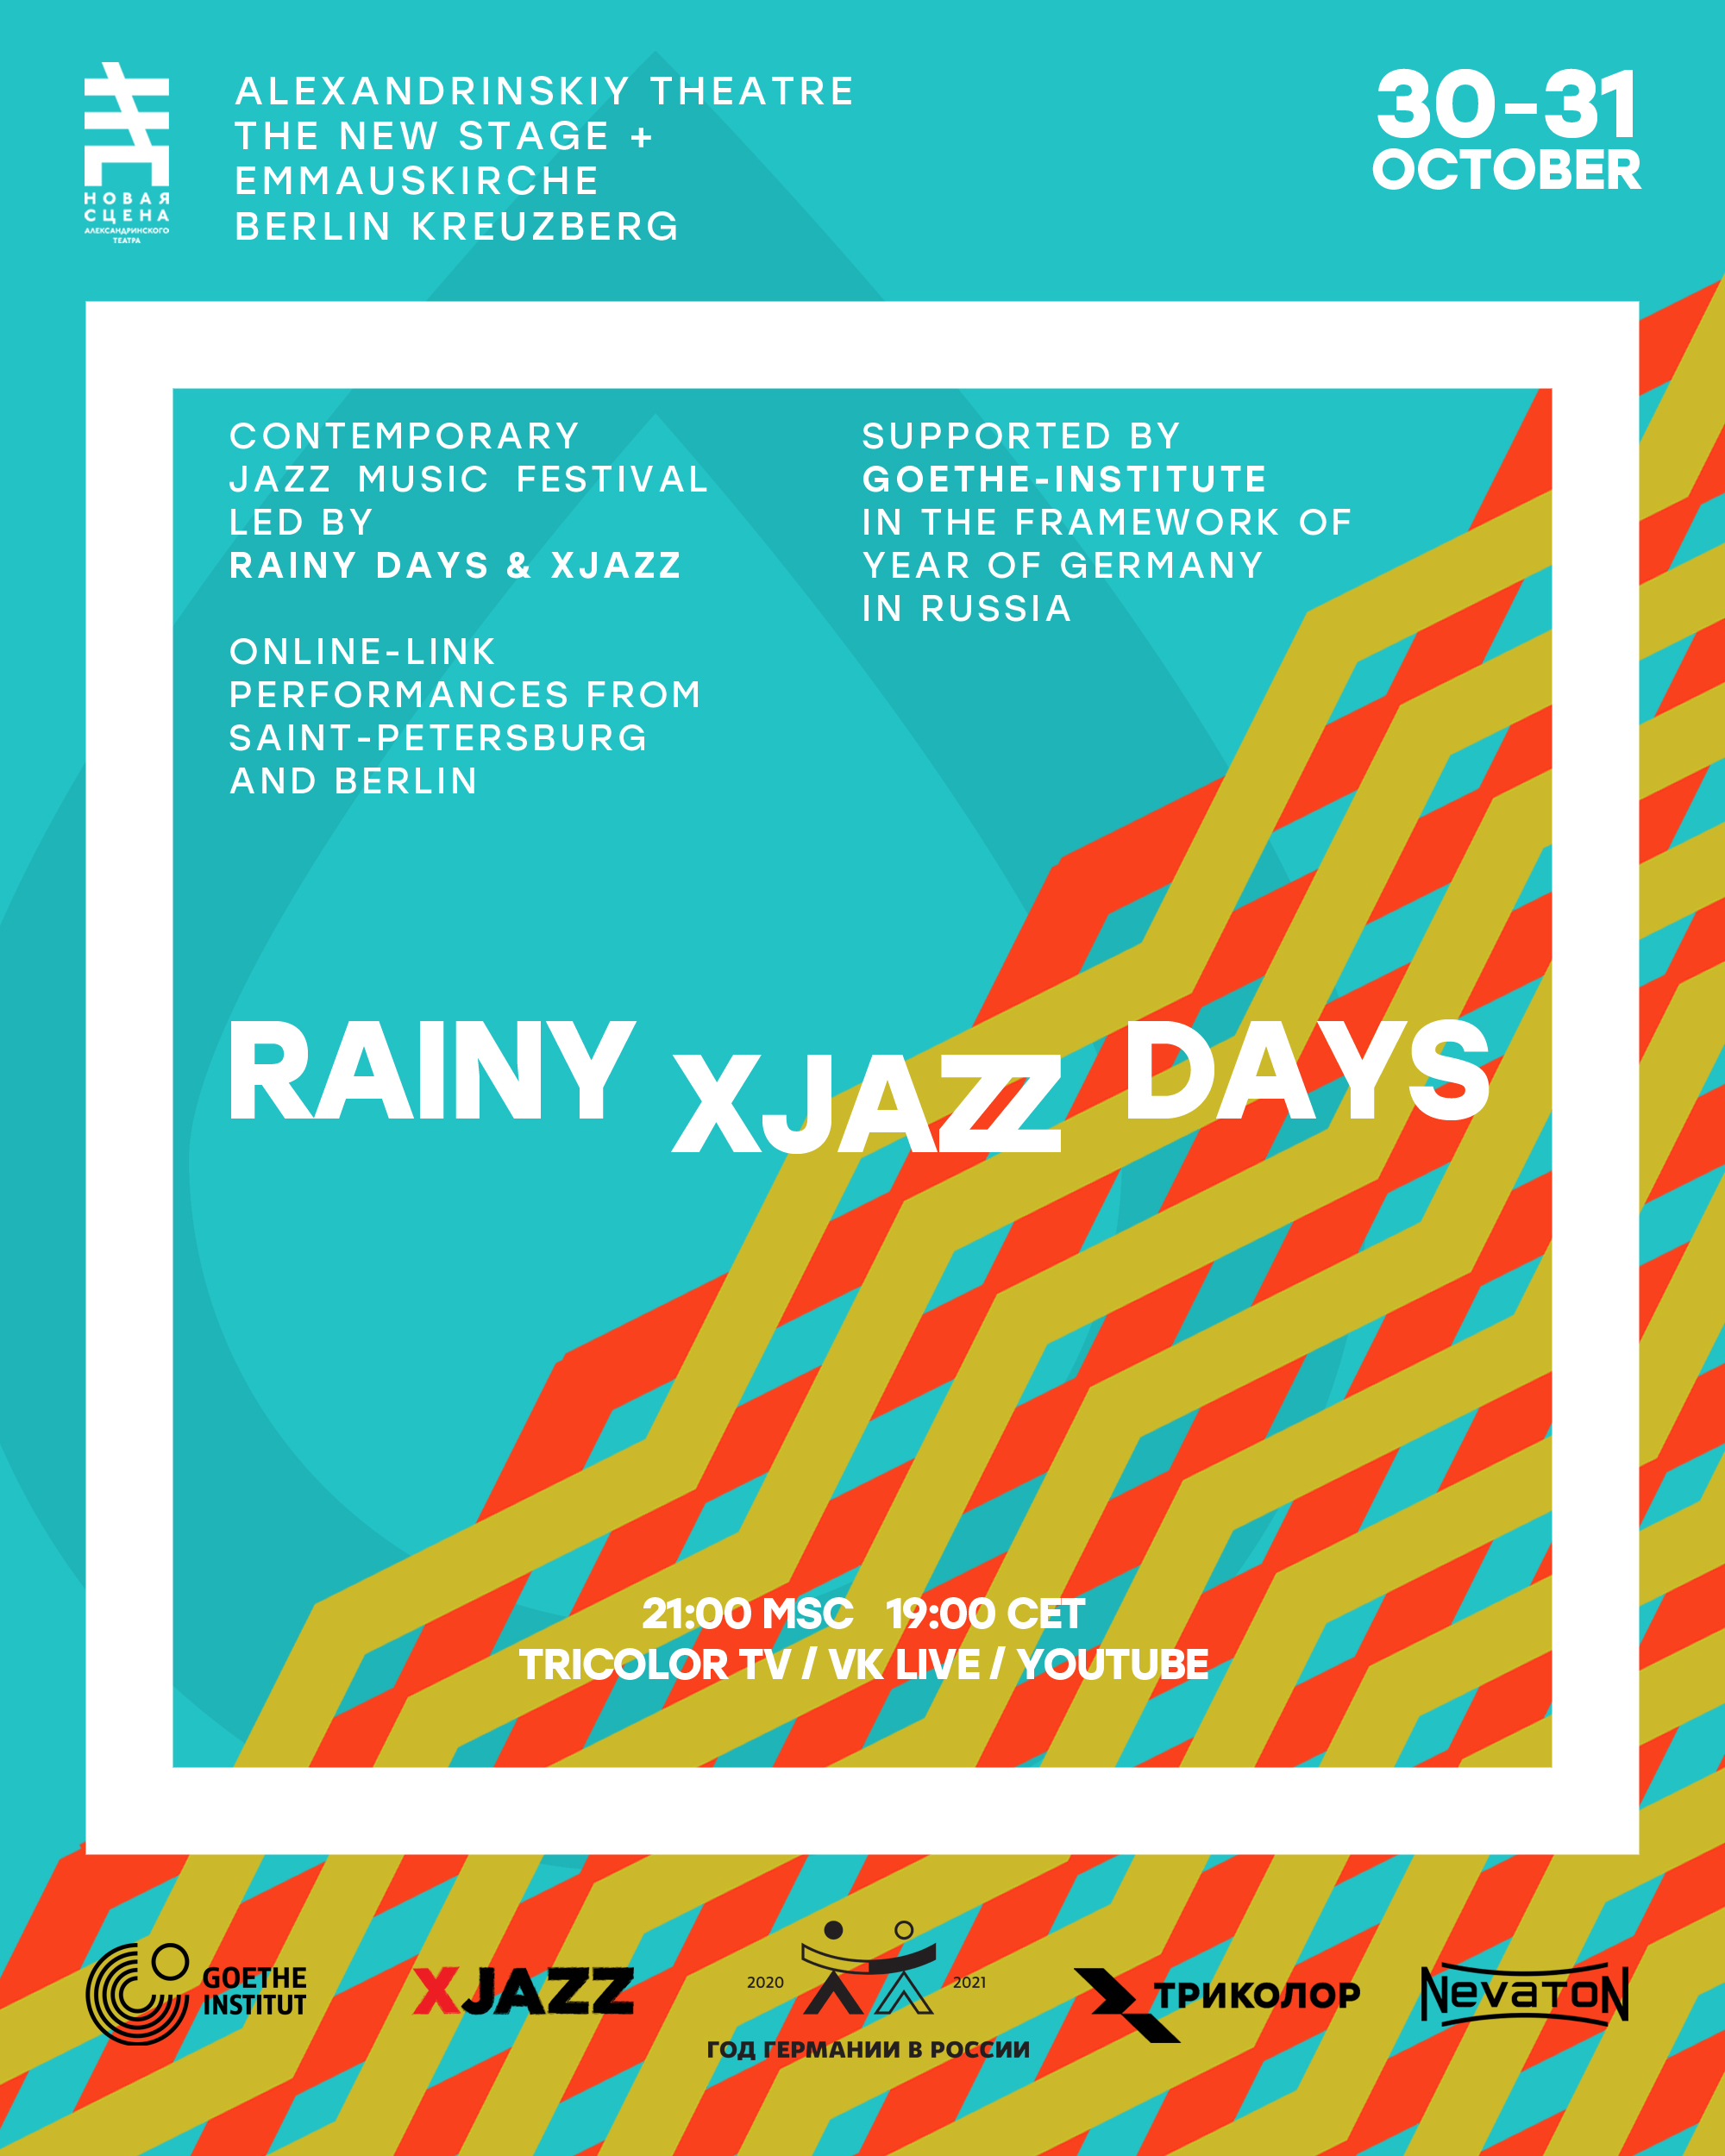 RAINY XJAZZ DAYS: 2-Day Virtual Festival LIVE from Germany & Russia (Oct 30-31)